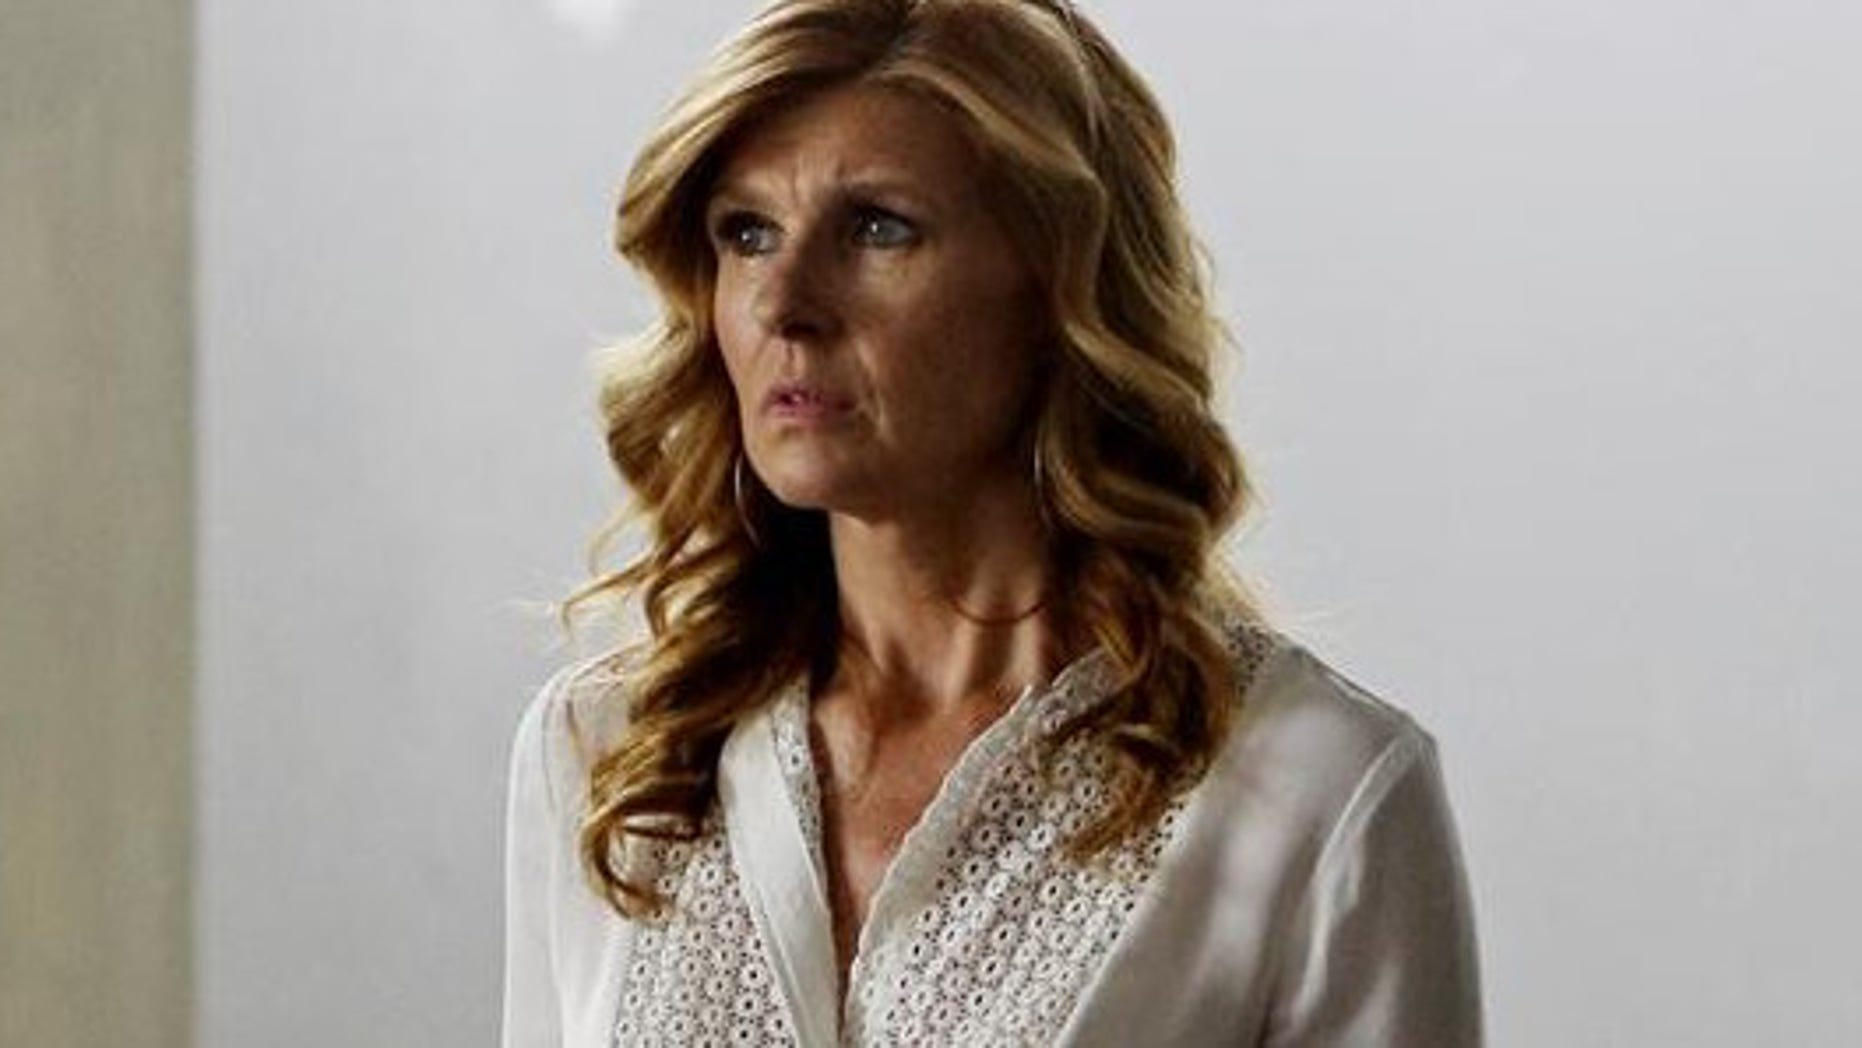 After Will's debut album bumps Rayna's to second place, she's more determined than ever to make Highway 65 and her record a hit.